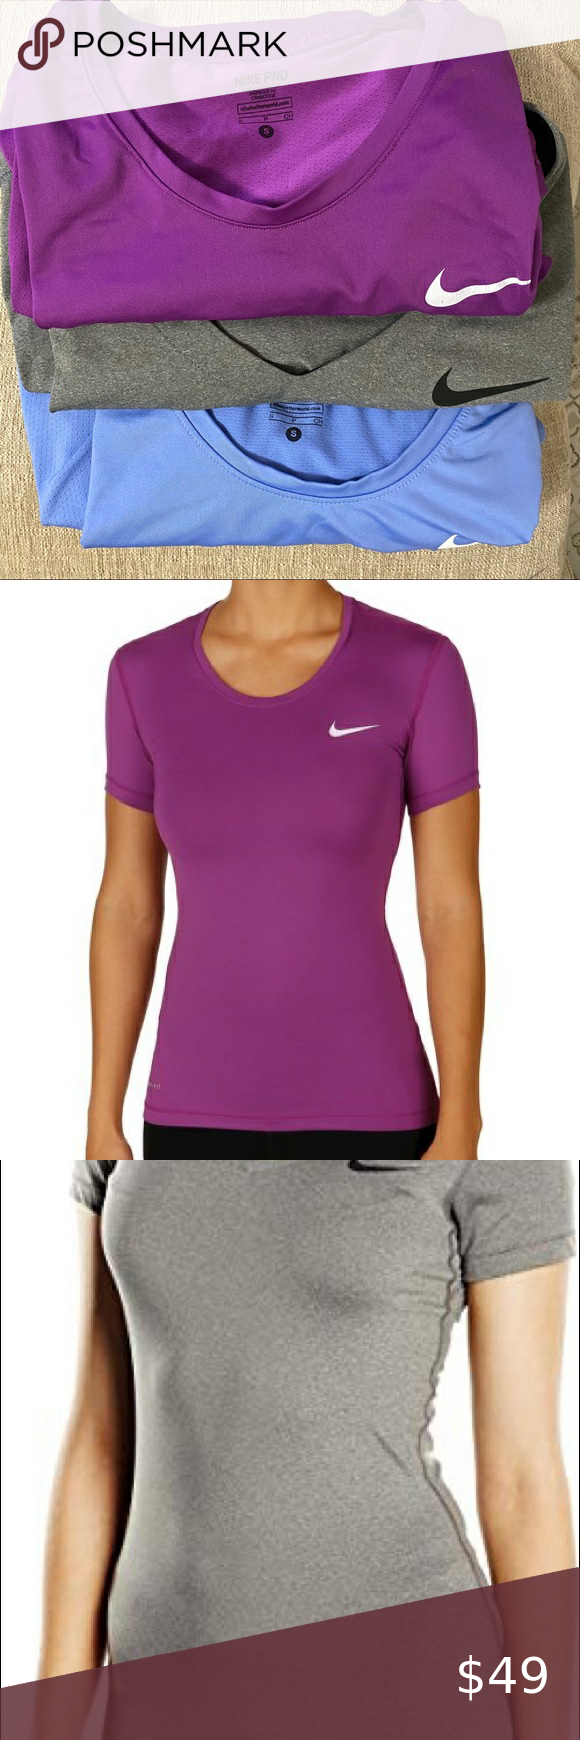 (3) Nike Women Pro Tops All three tops are semi new. Hardly used. Only Grey top is V-neck.  Sizes: Purple (S) Grey (XS) Light blue (S) Nike Tops